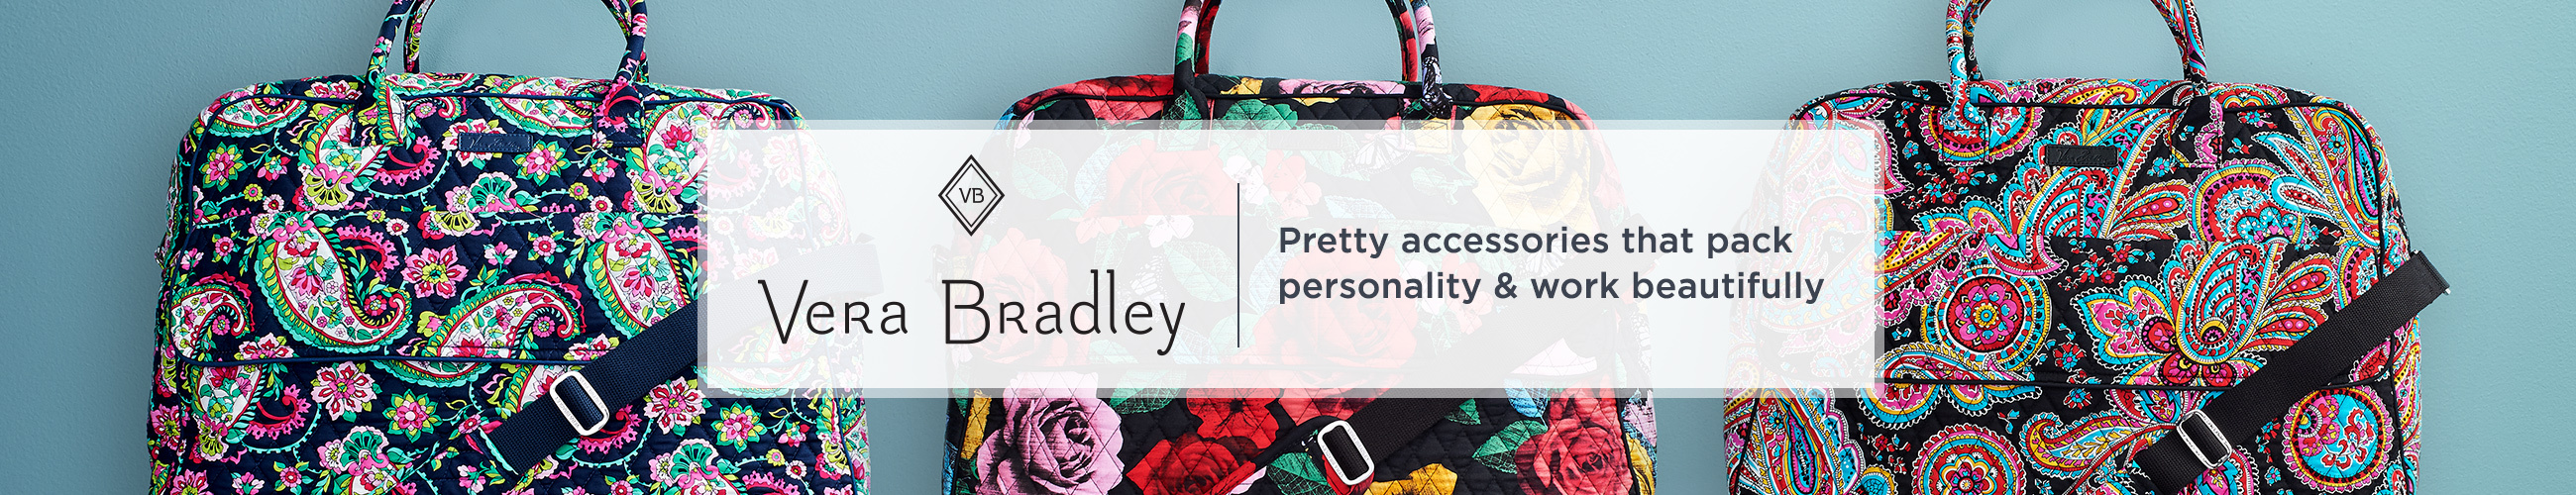 Vera Bradley.  Pretty accessories that pack personality & work beautifully